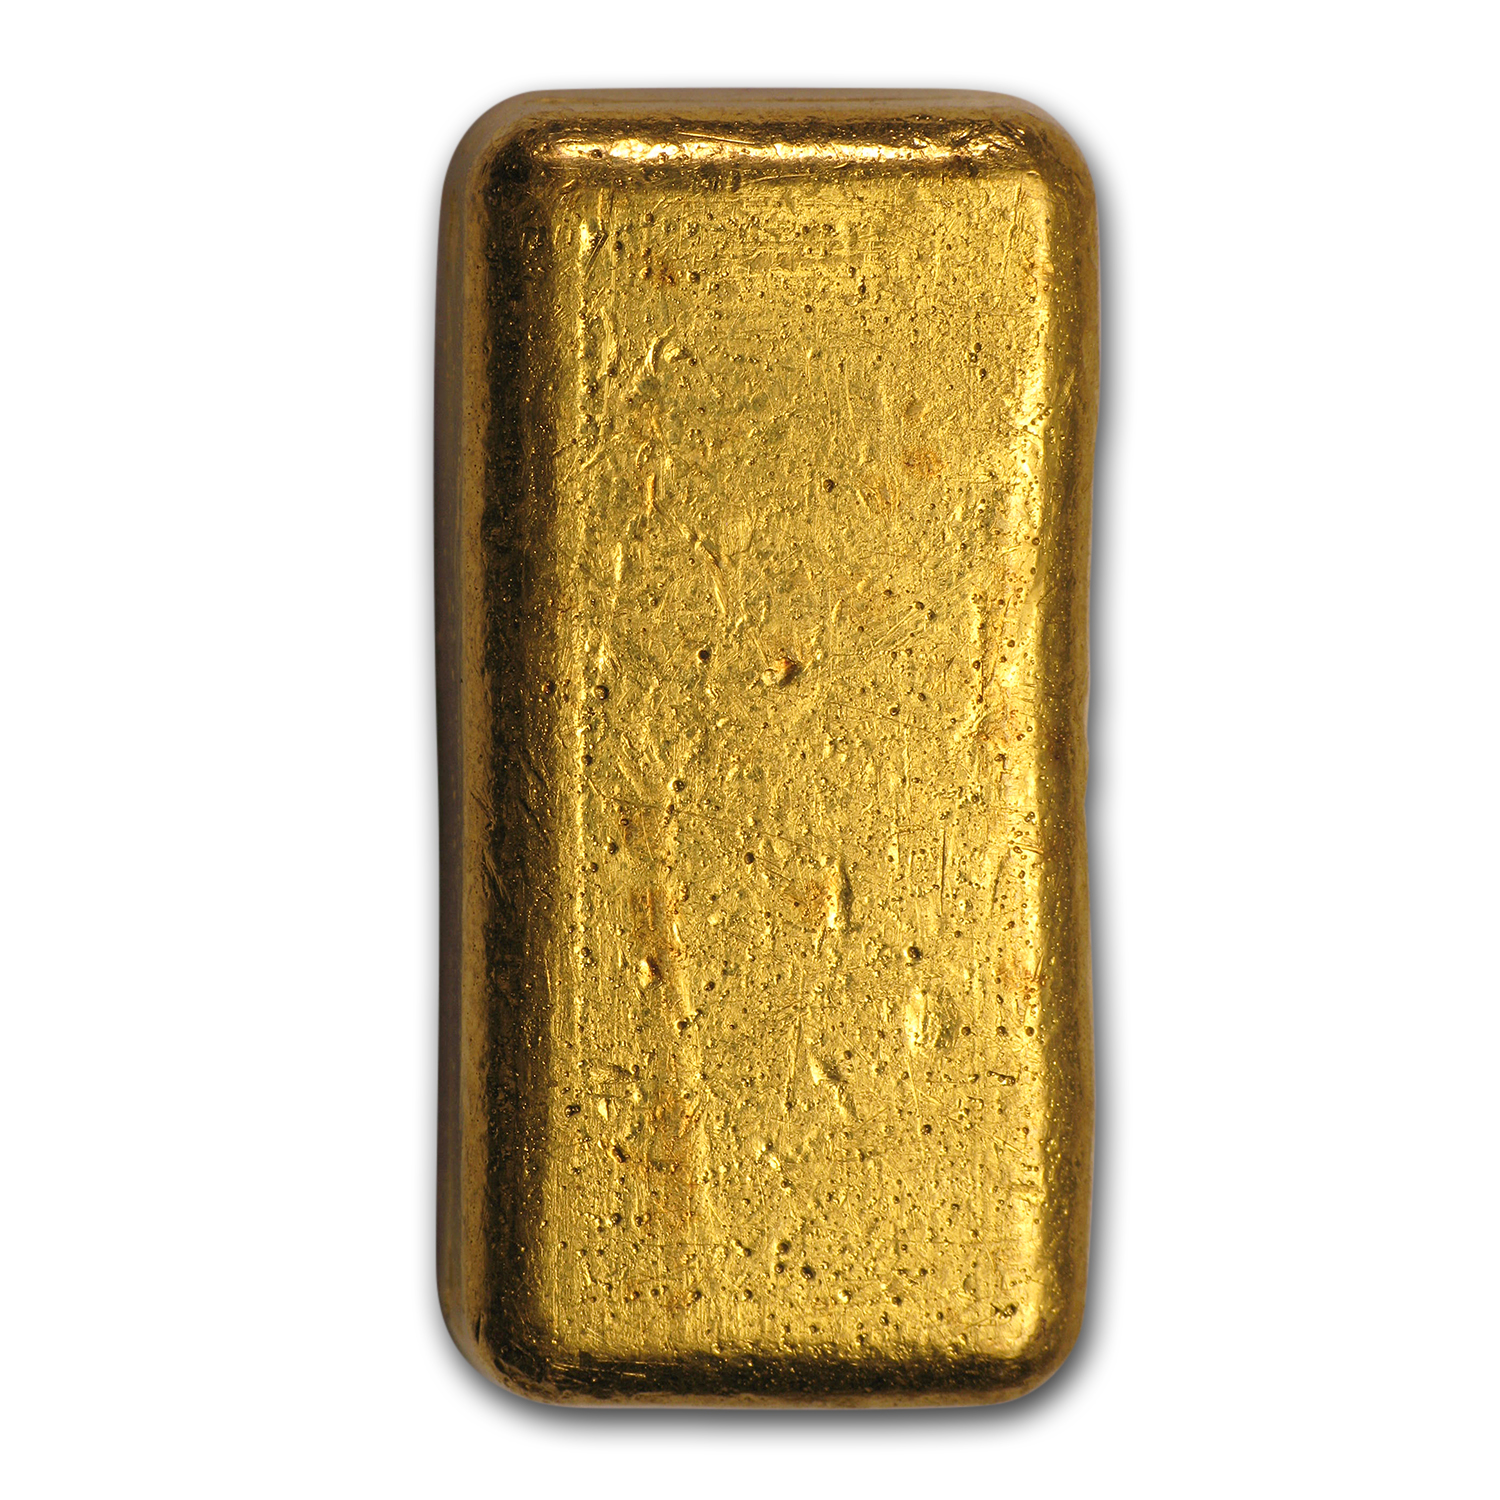 5 oz Gold Bars - Perth Mint (Loaf-Style)